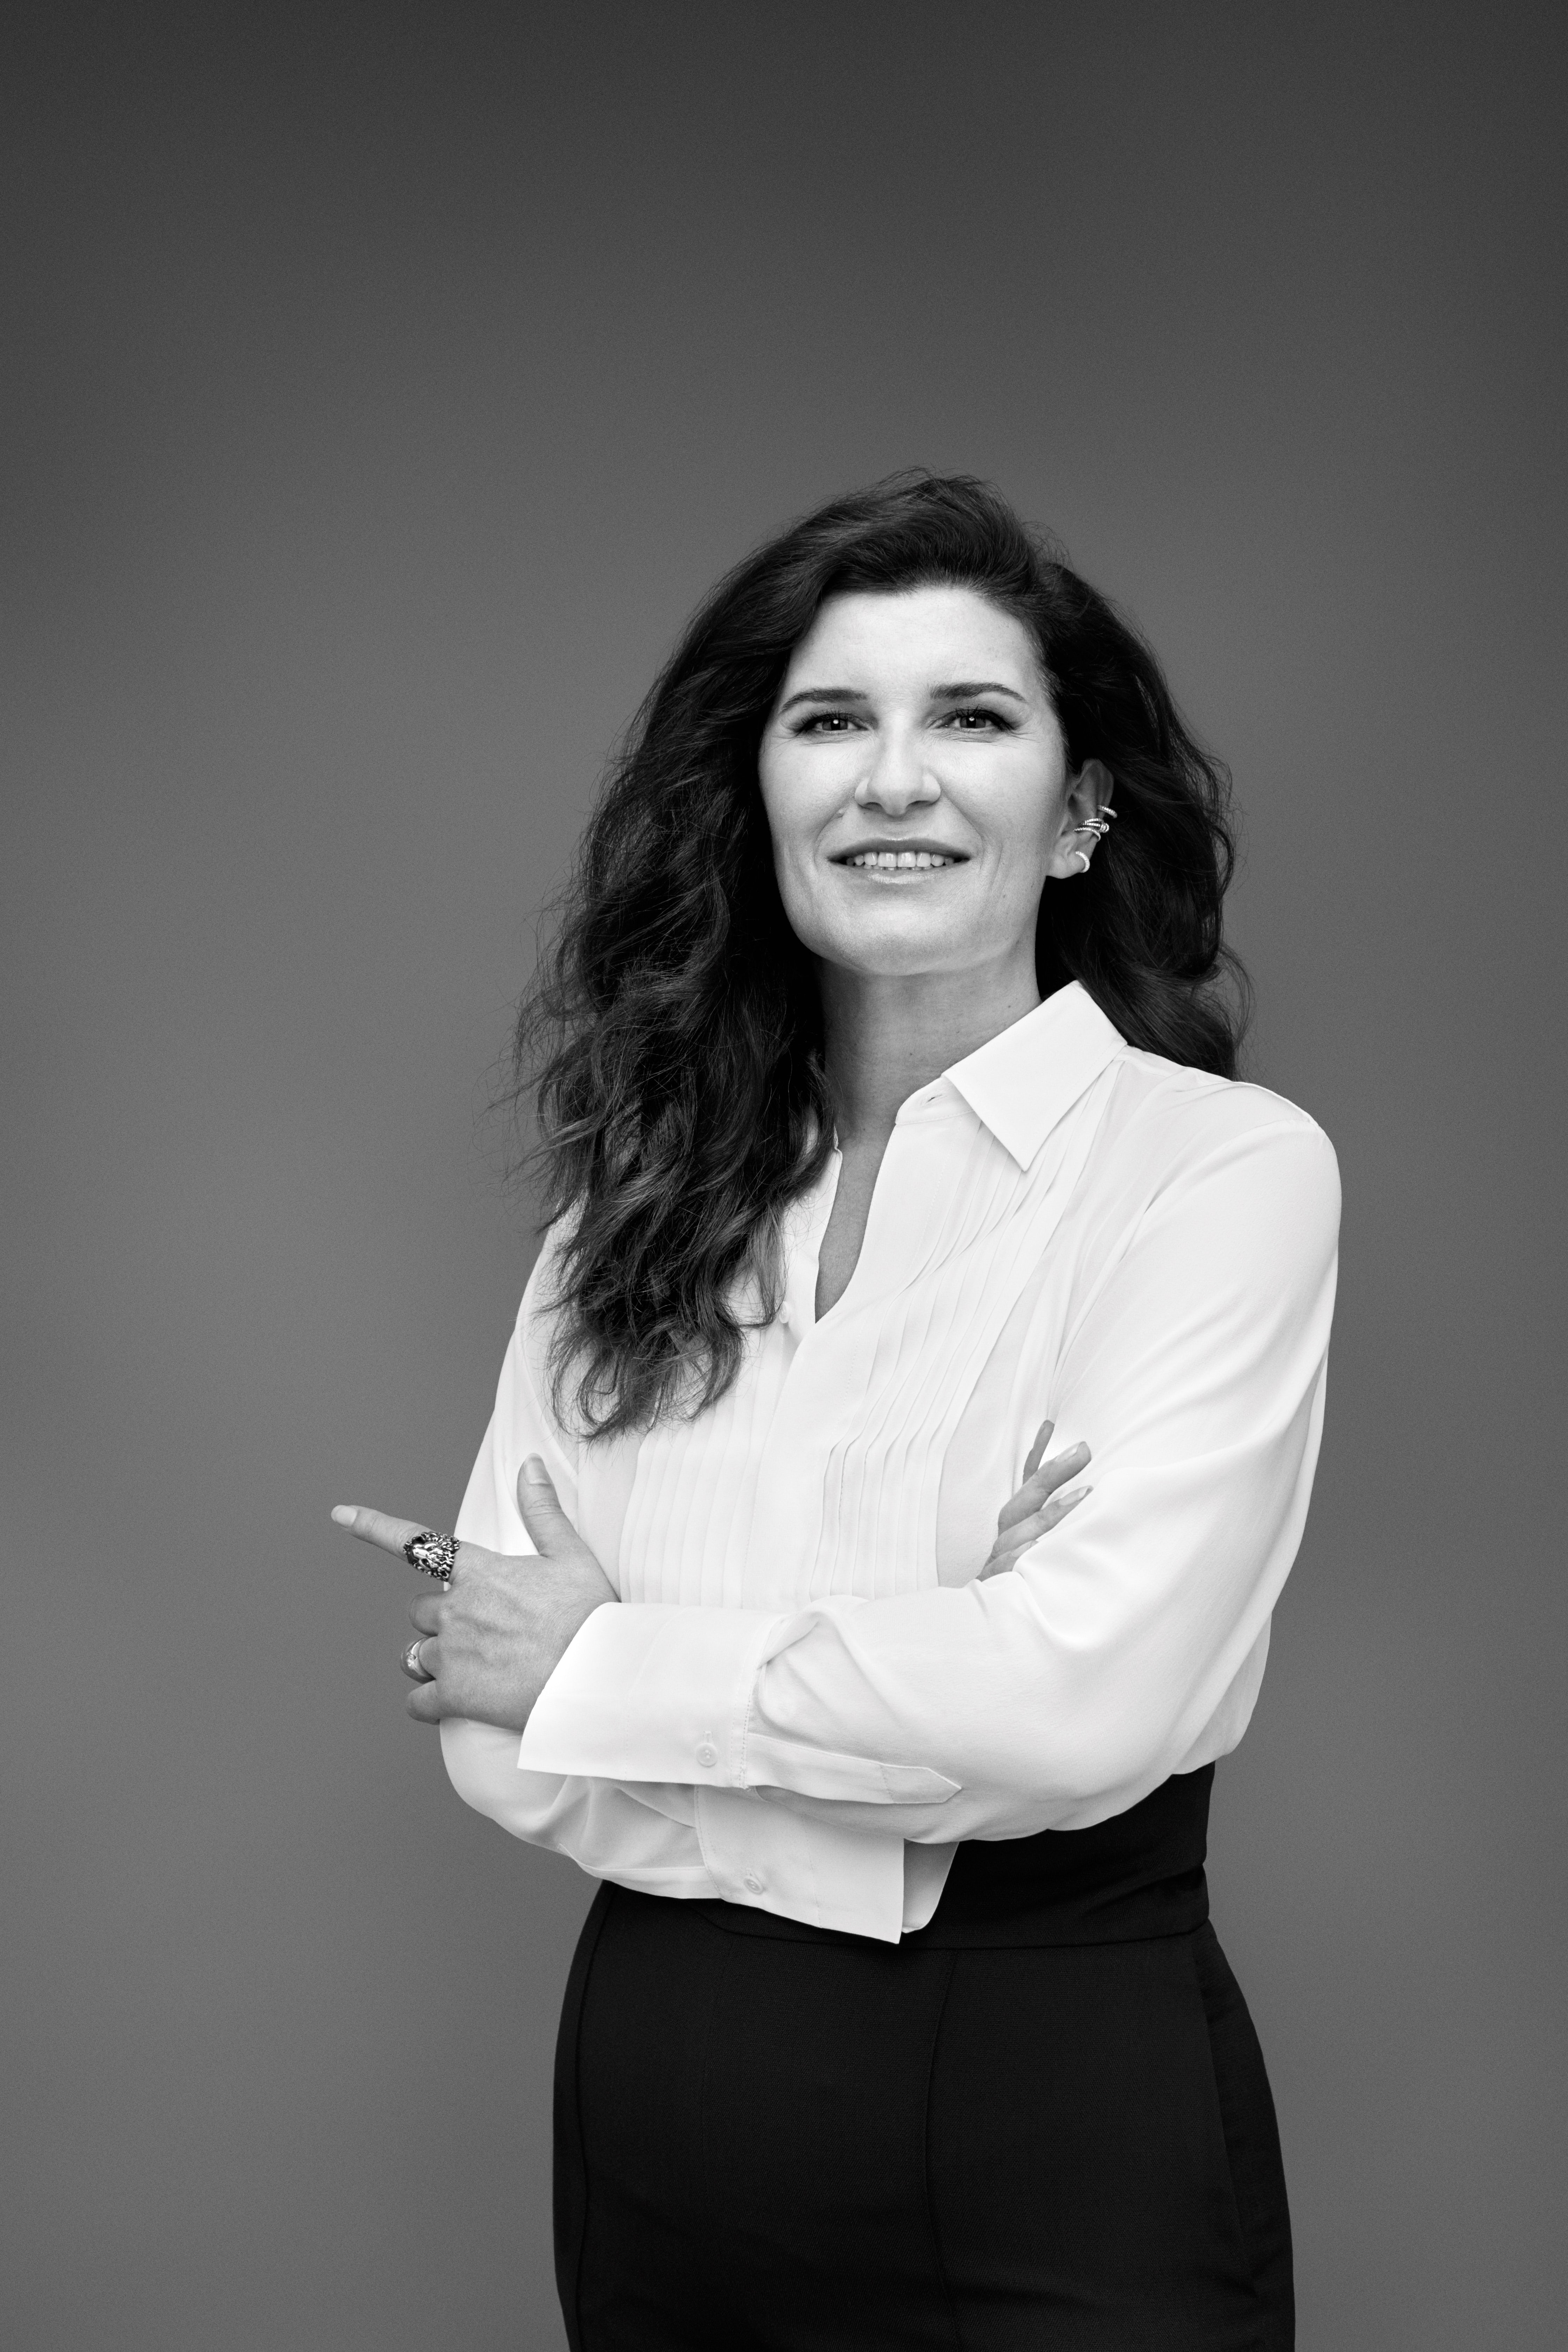 Global brand president Delphine Viguier became the first woman to lead L'Oréal Paris since its founding in 1909. L'Oréal.